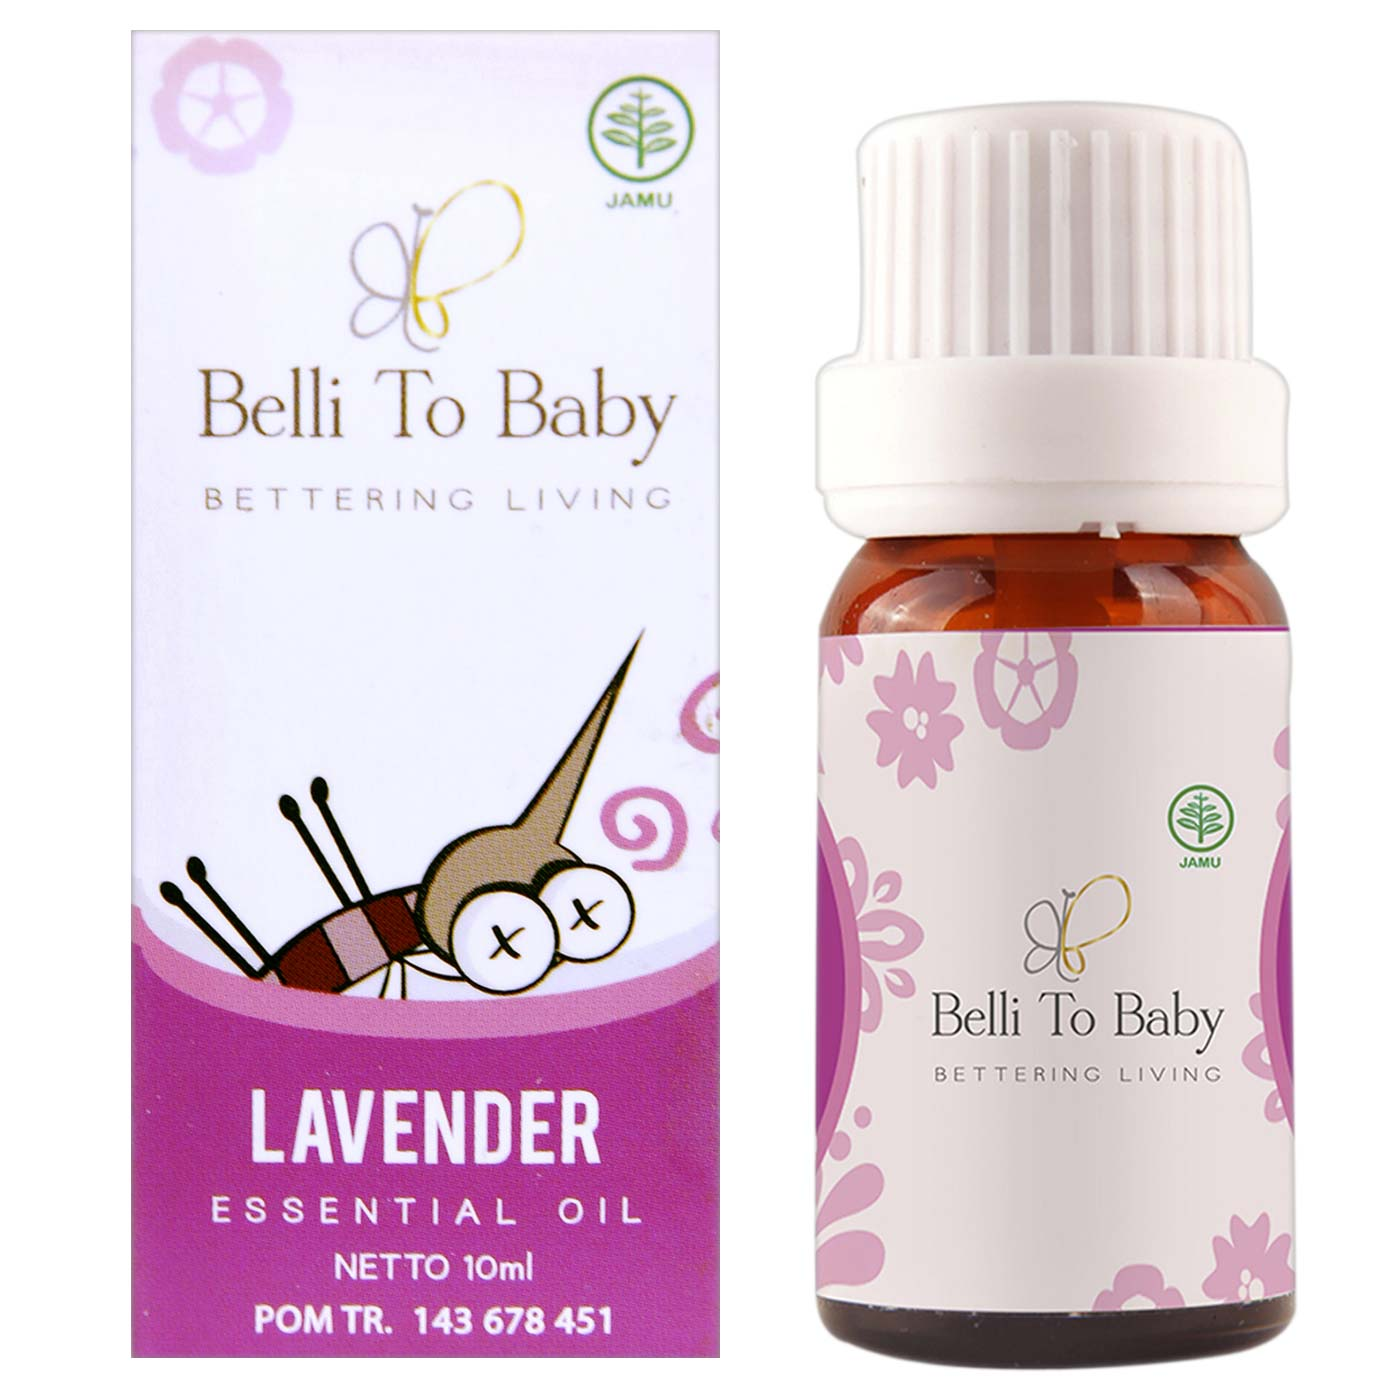 Belli To Baby Essential Oil Lavender 10ml